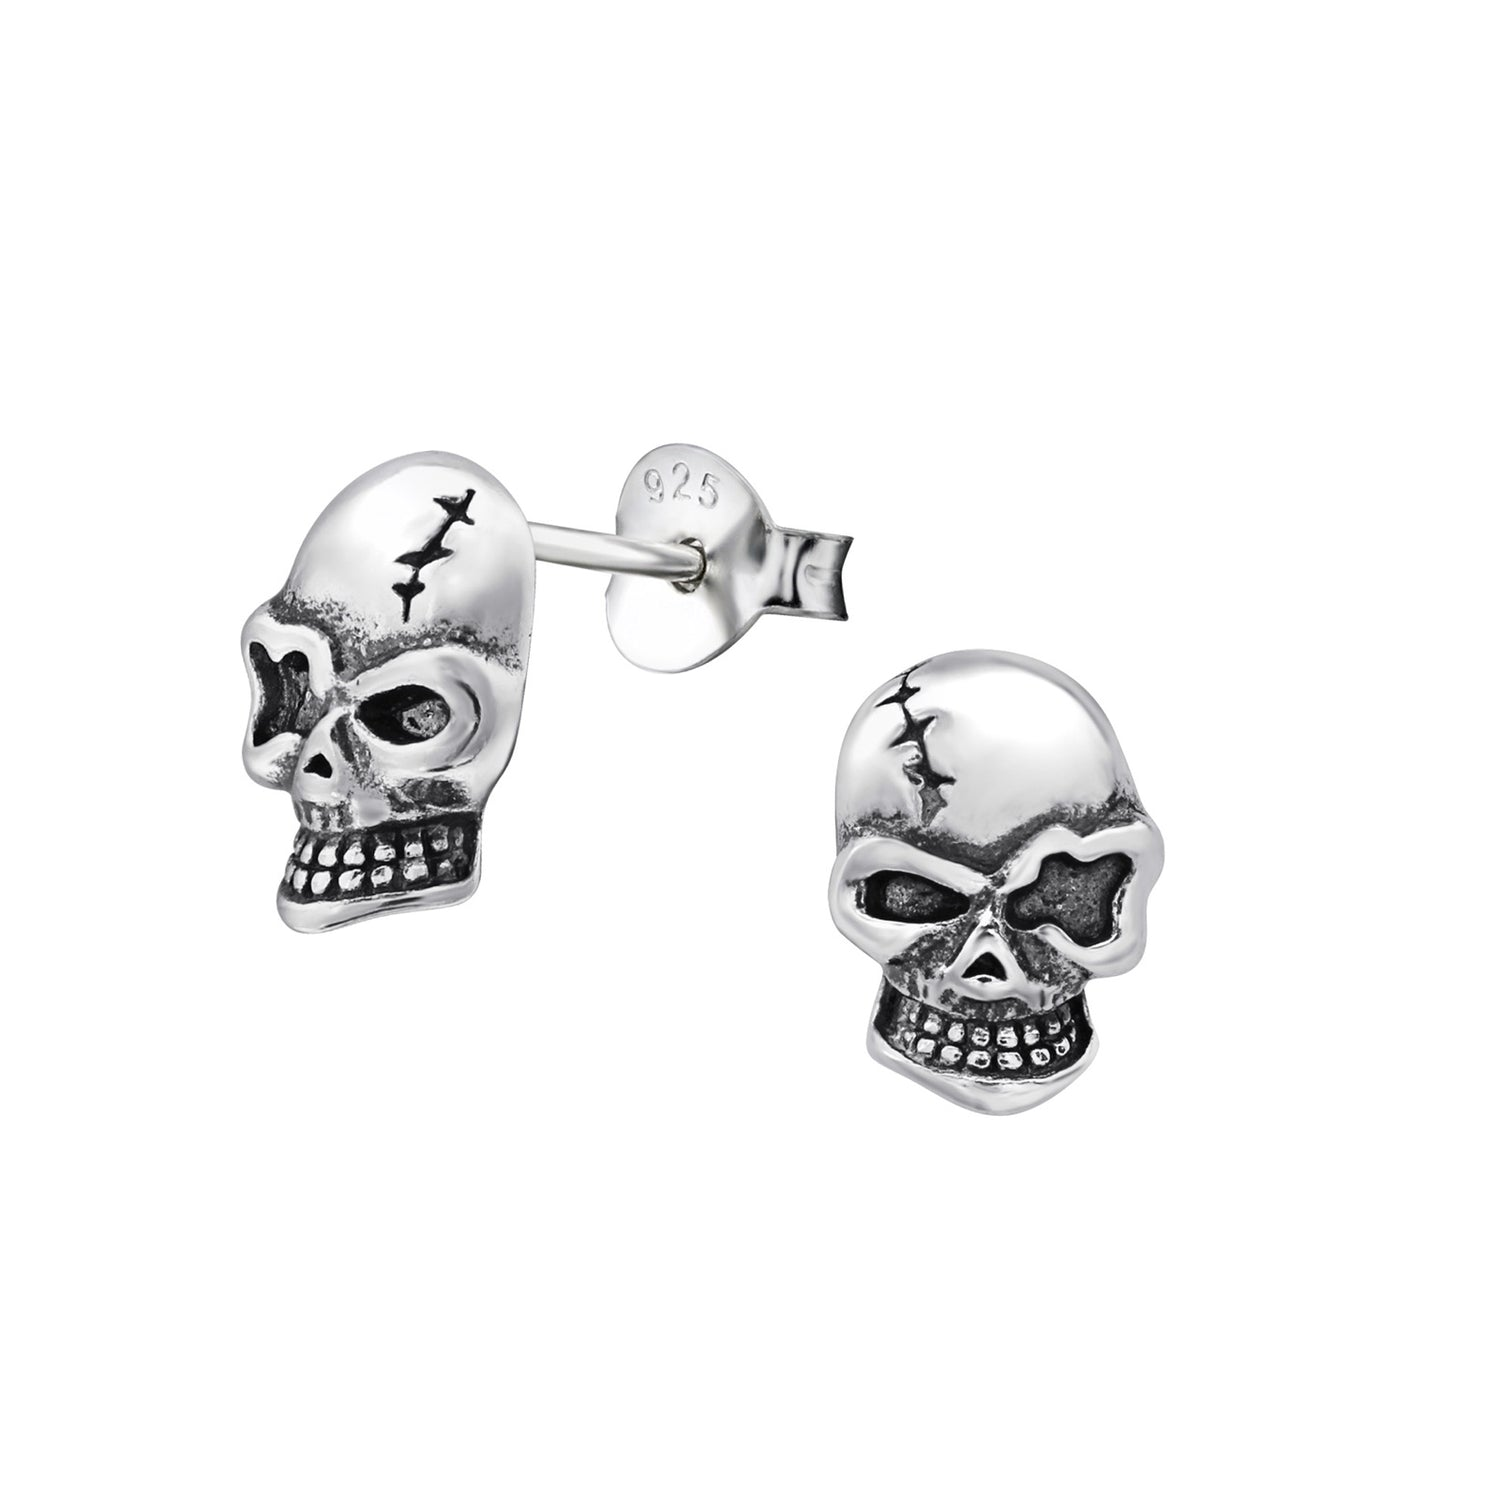 Gothic Skull Stud Earrings